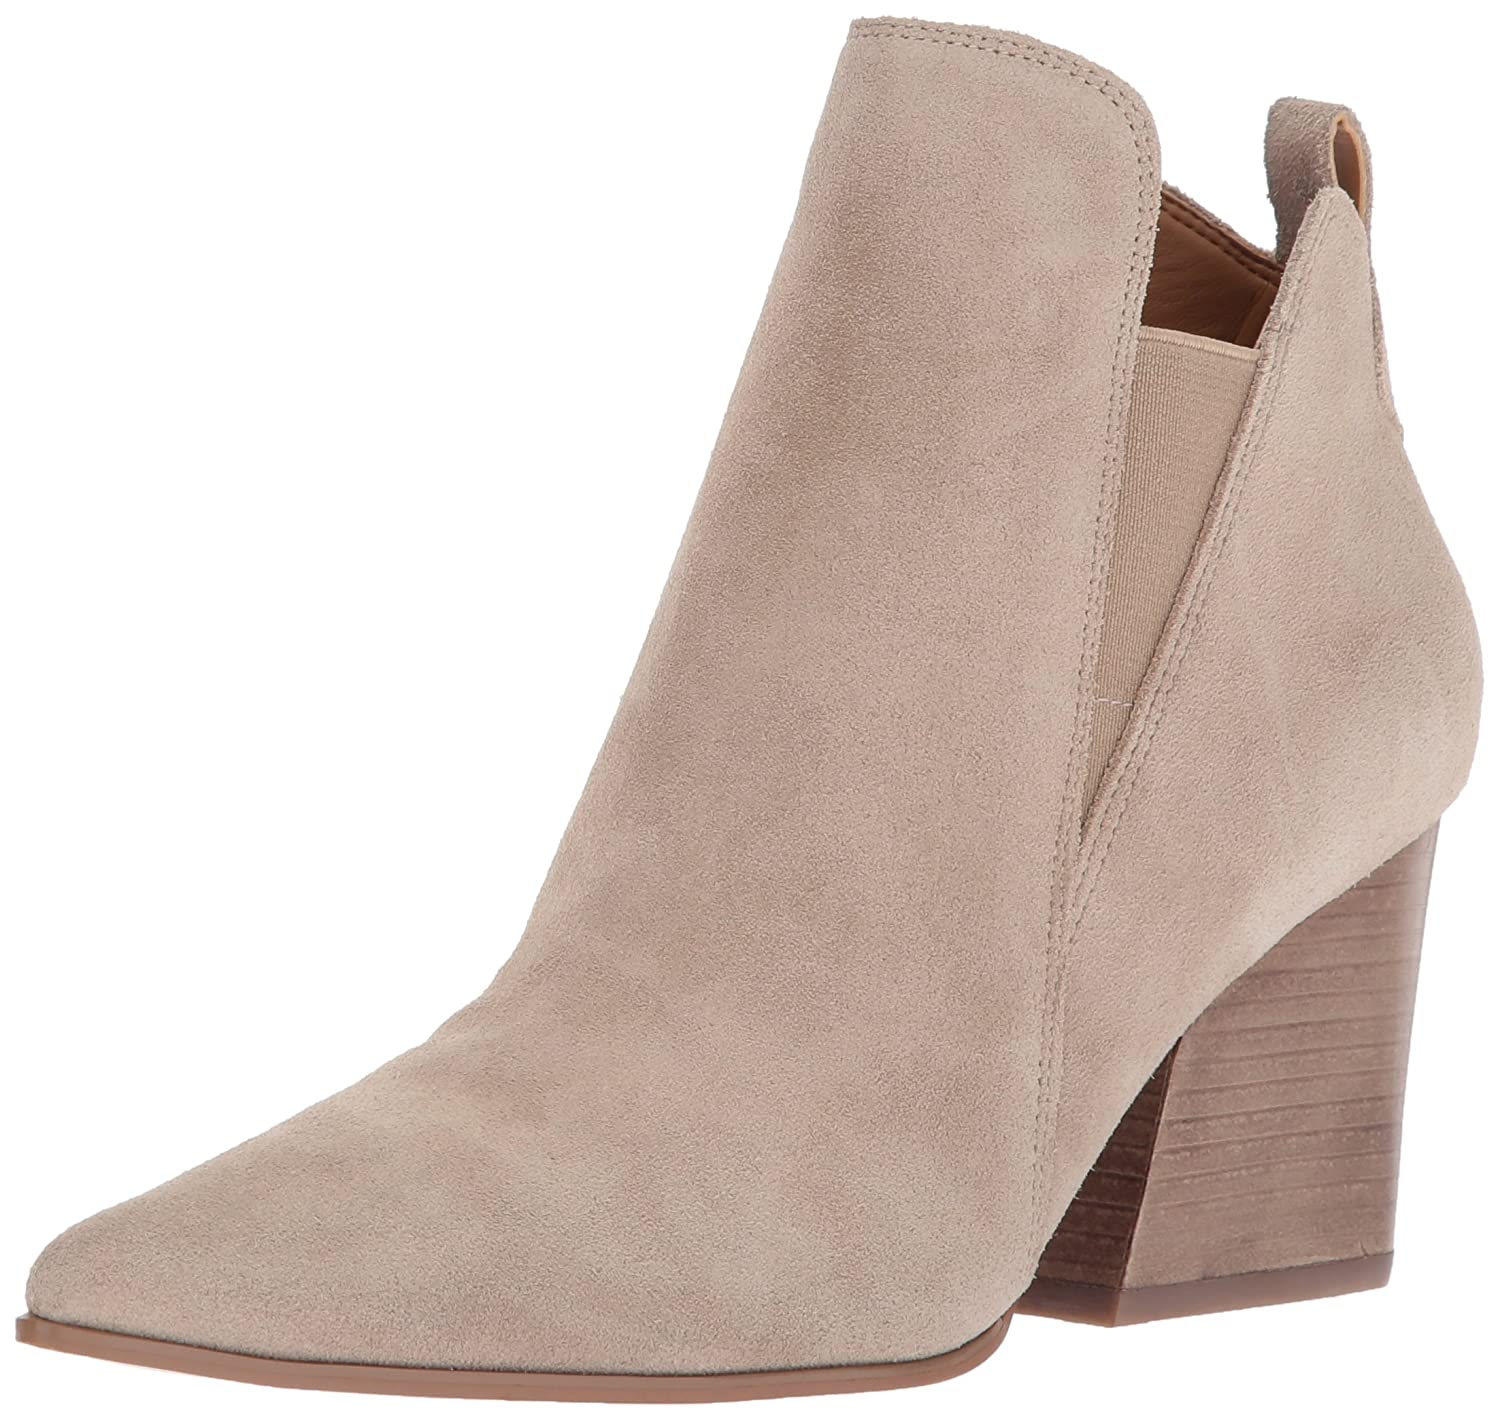 KENDALL + KYLIE Women's Fox Ankle Boot B071V8GNRM 8.5 B(M) US|Walnut